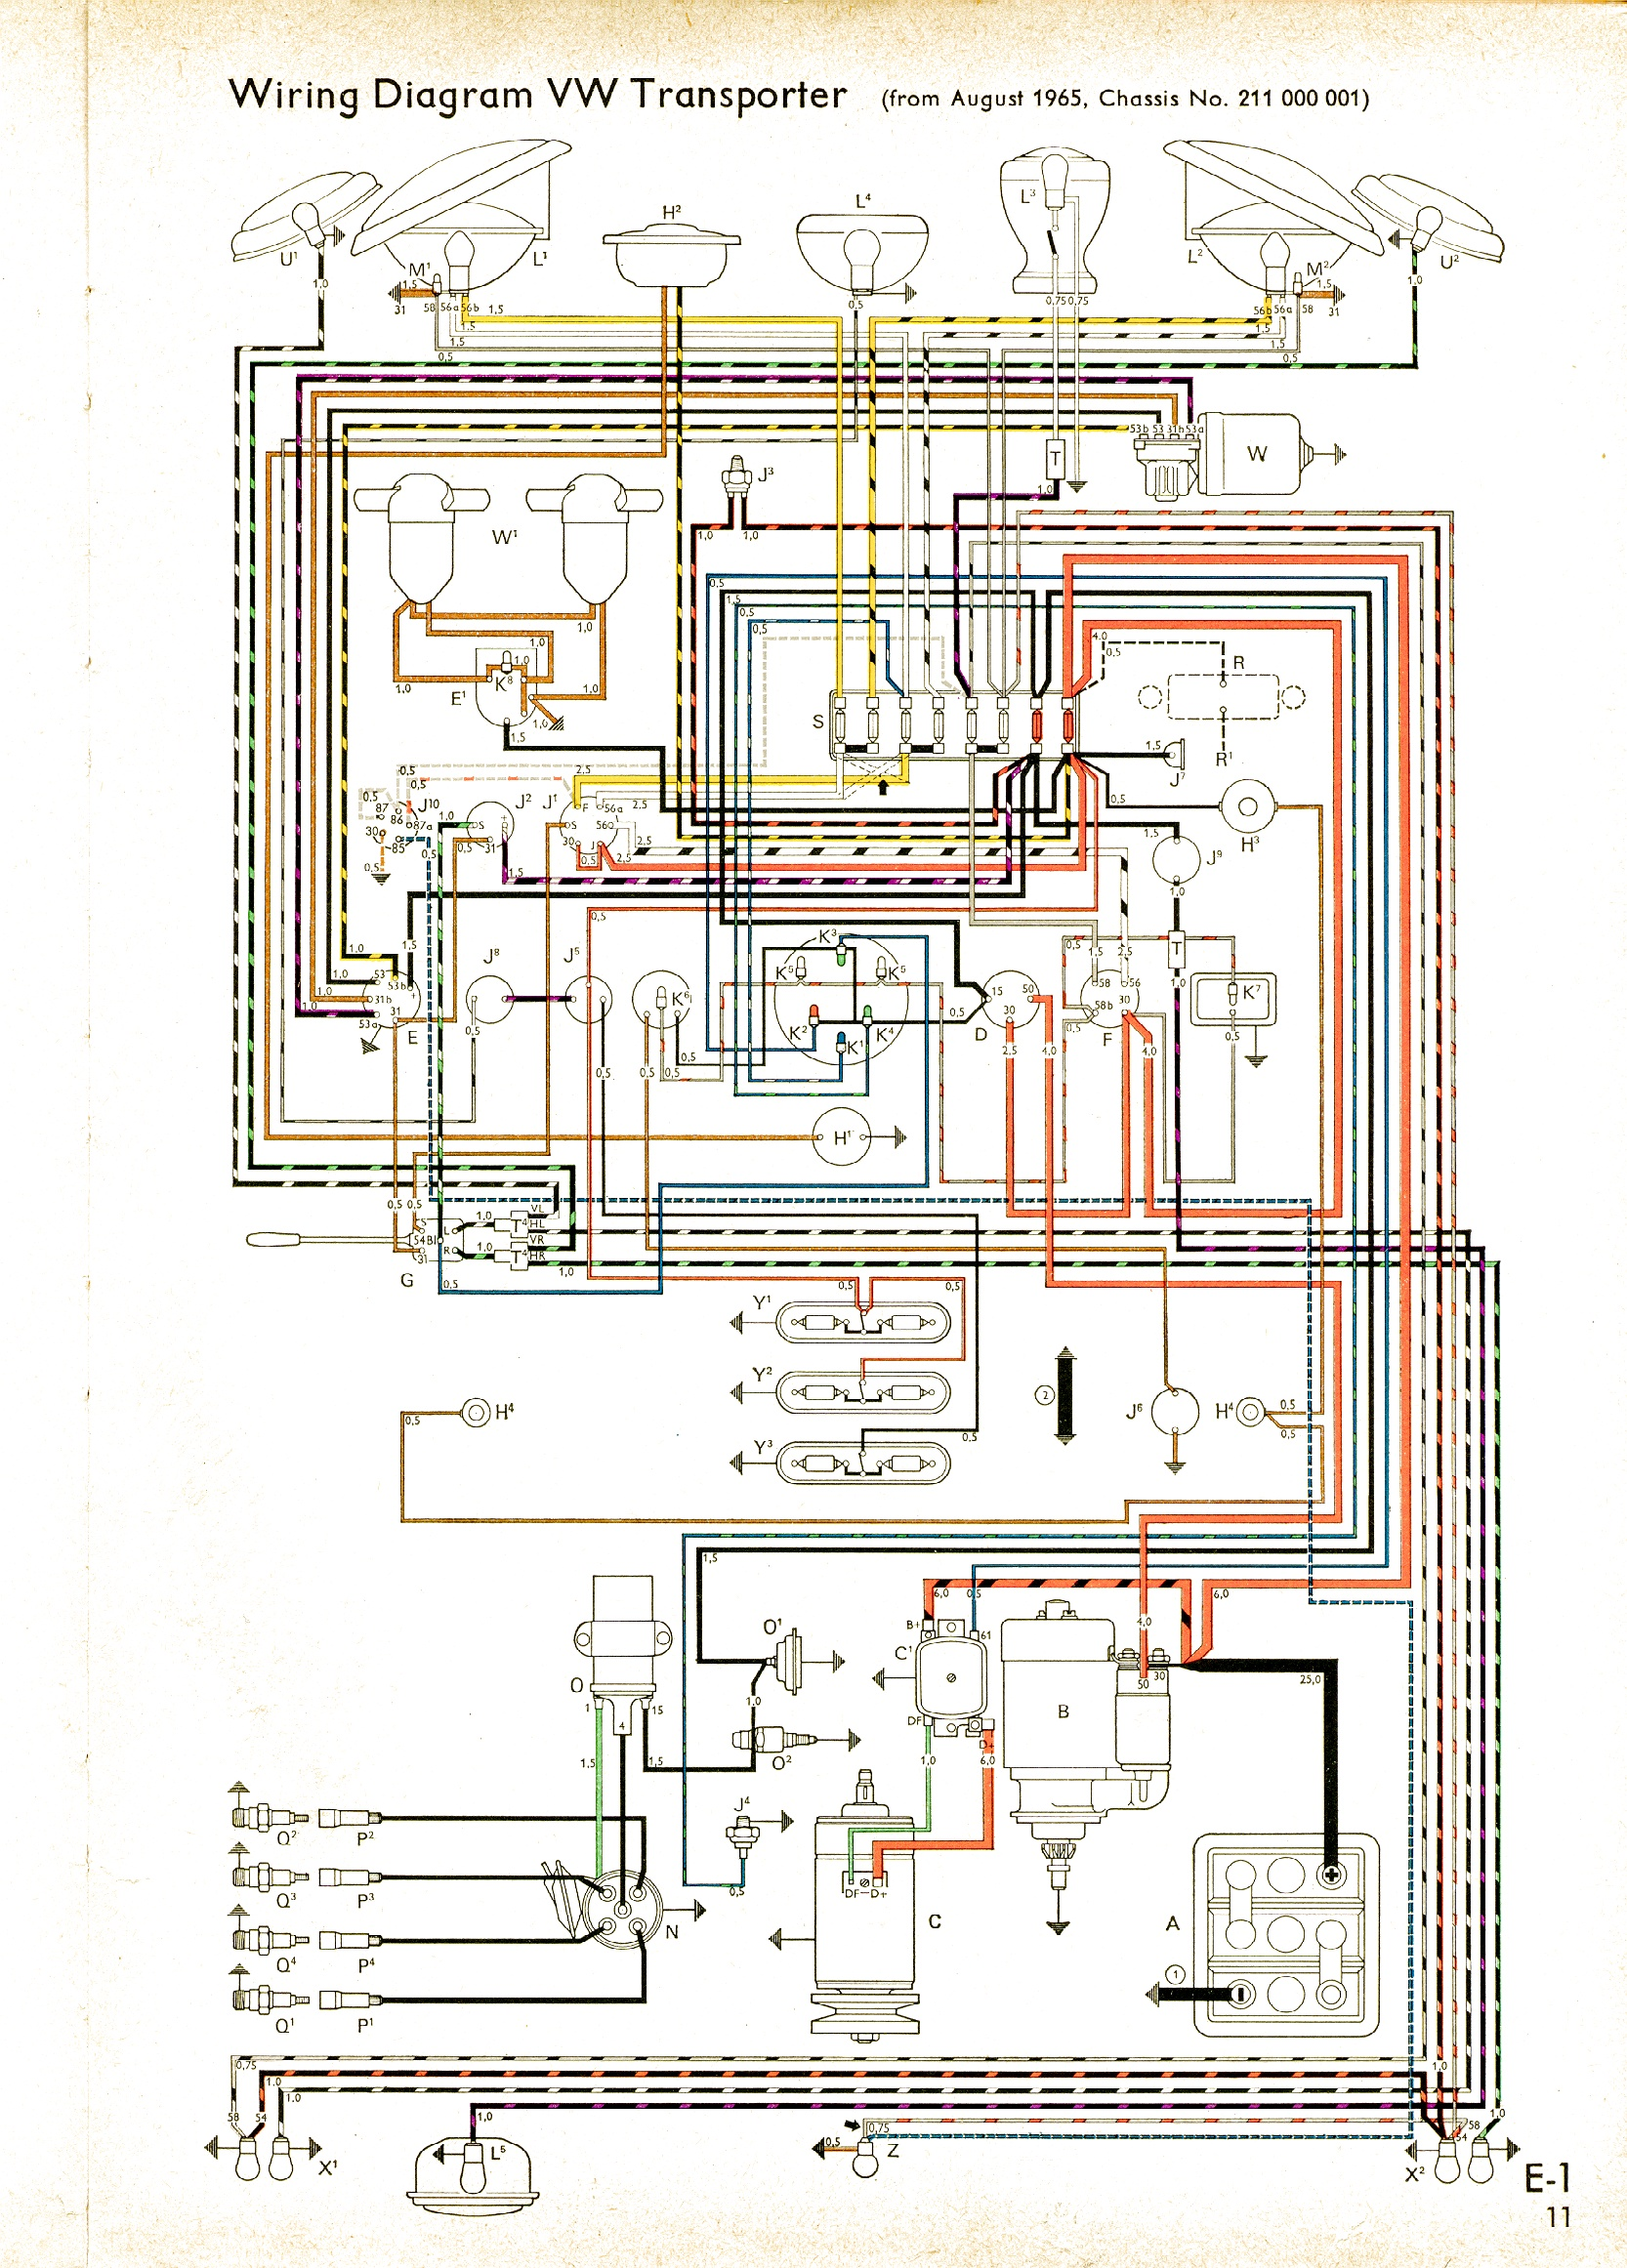 1967 vw beetle wiring diagram RIDAwNe 1967 vw bug wiring diagram on 1967 download wirning diagrams vw bug wiring diagram at soozxer.org